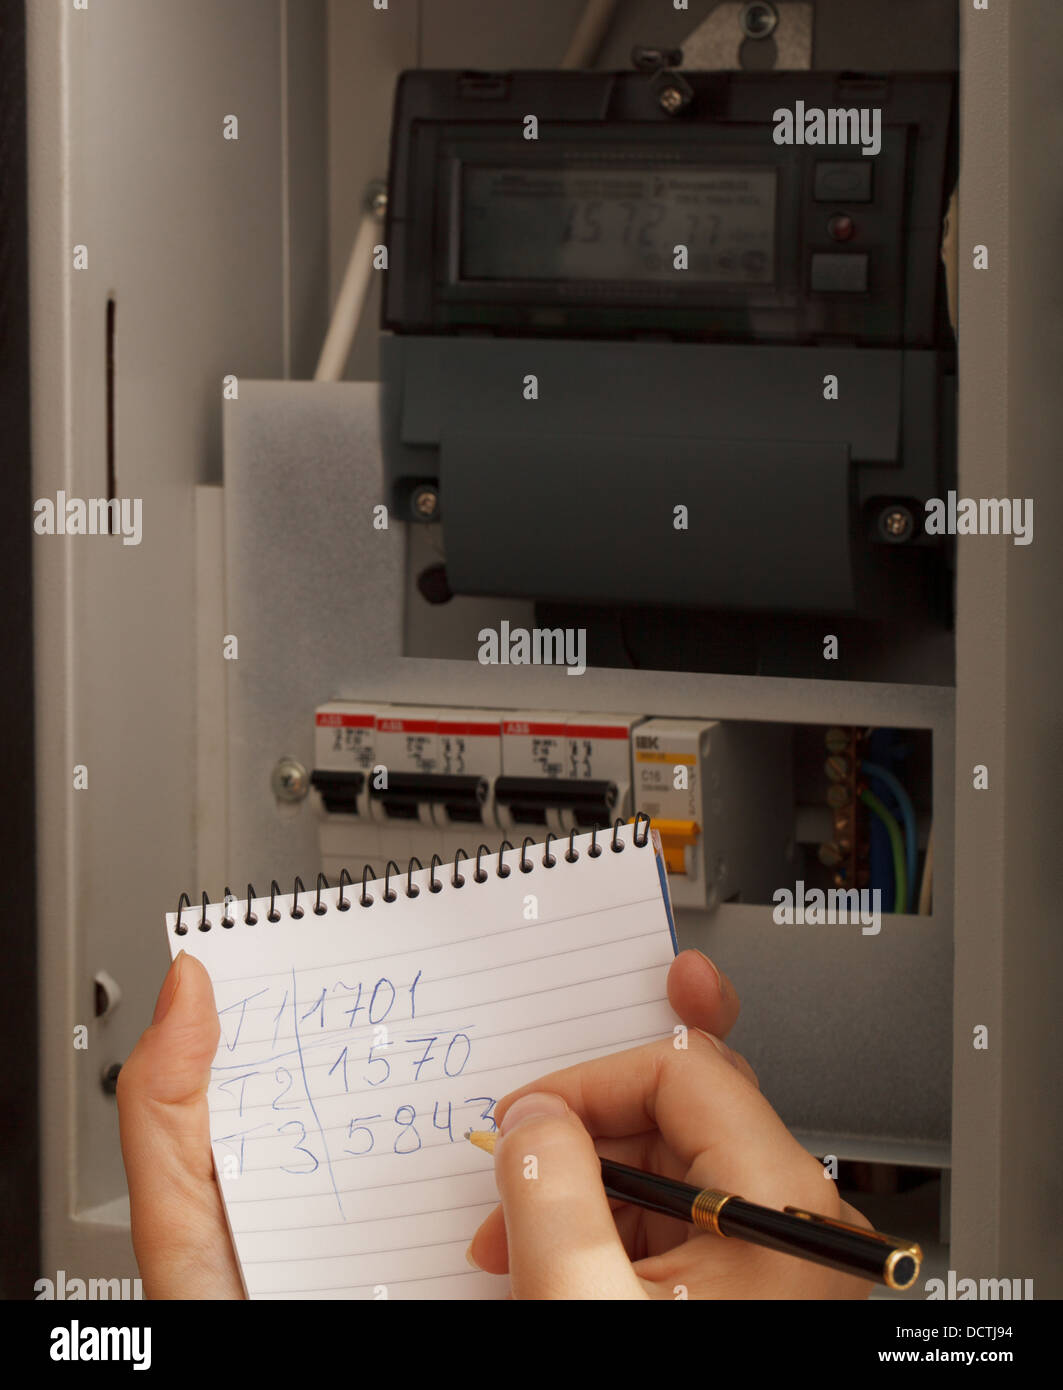 Rewriting of the electrical meter readings - Stock Image